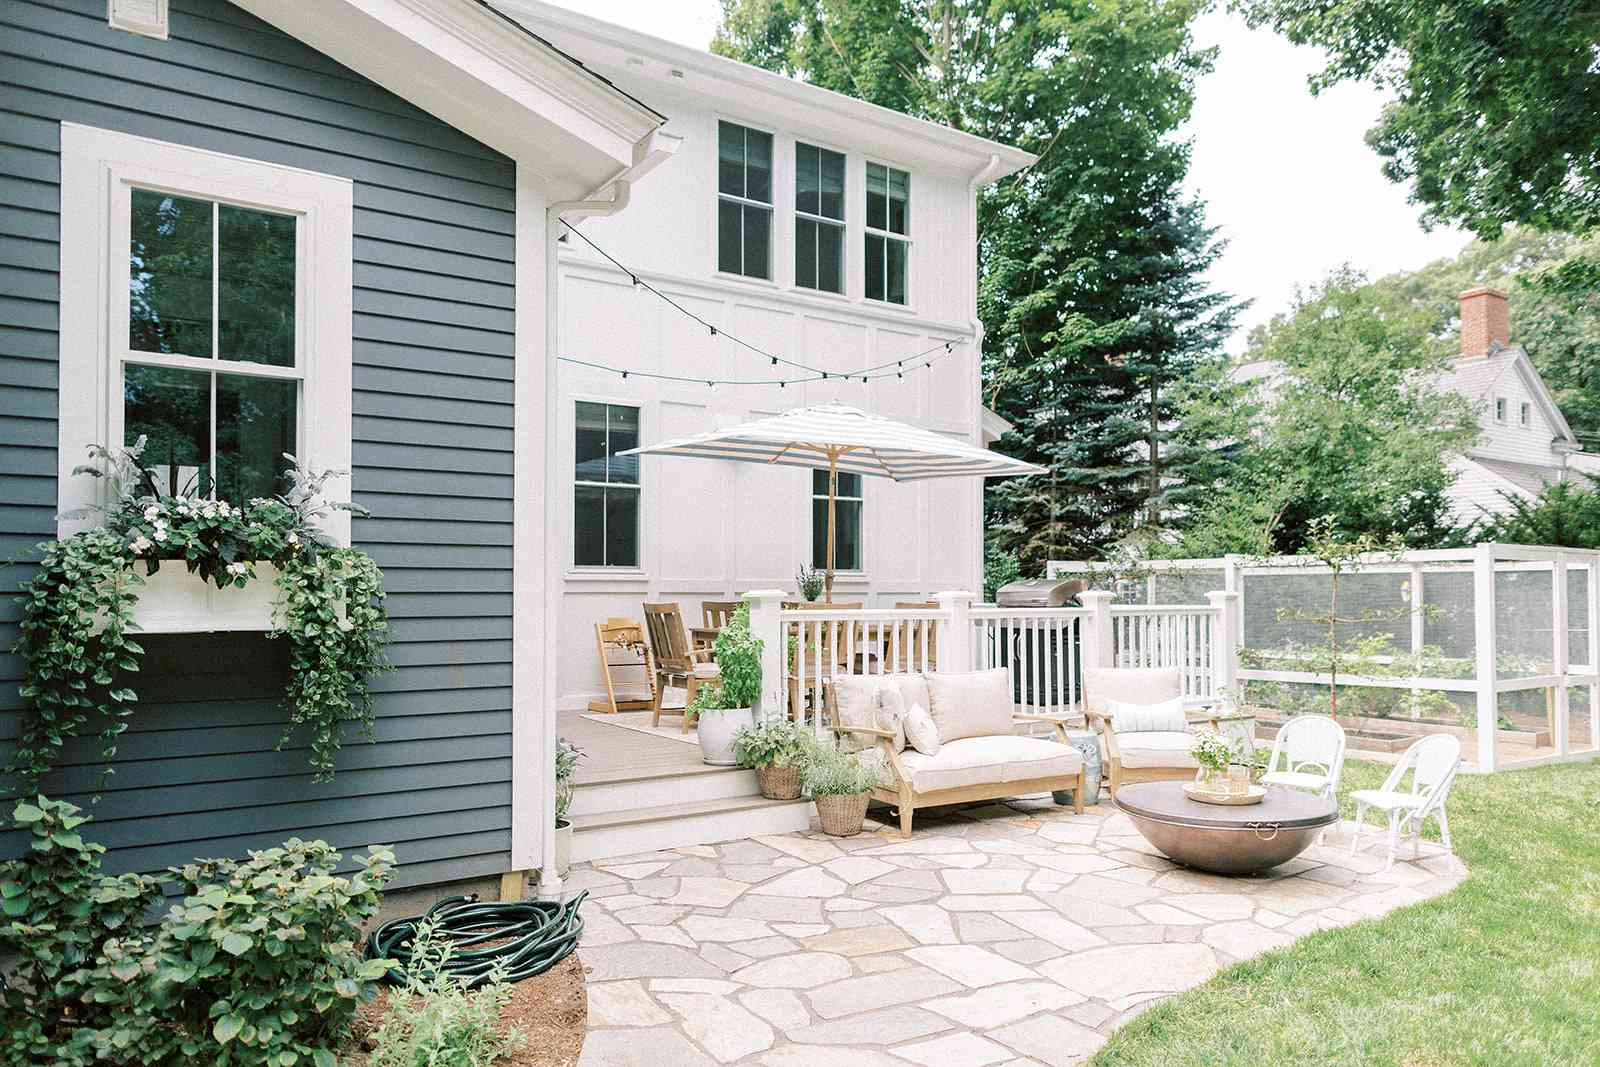 Finding Lovely outdoor seating